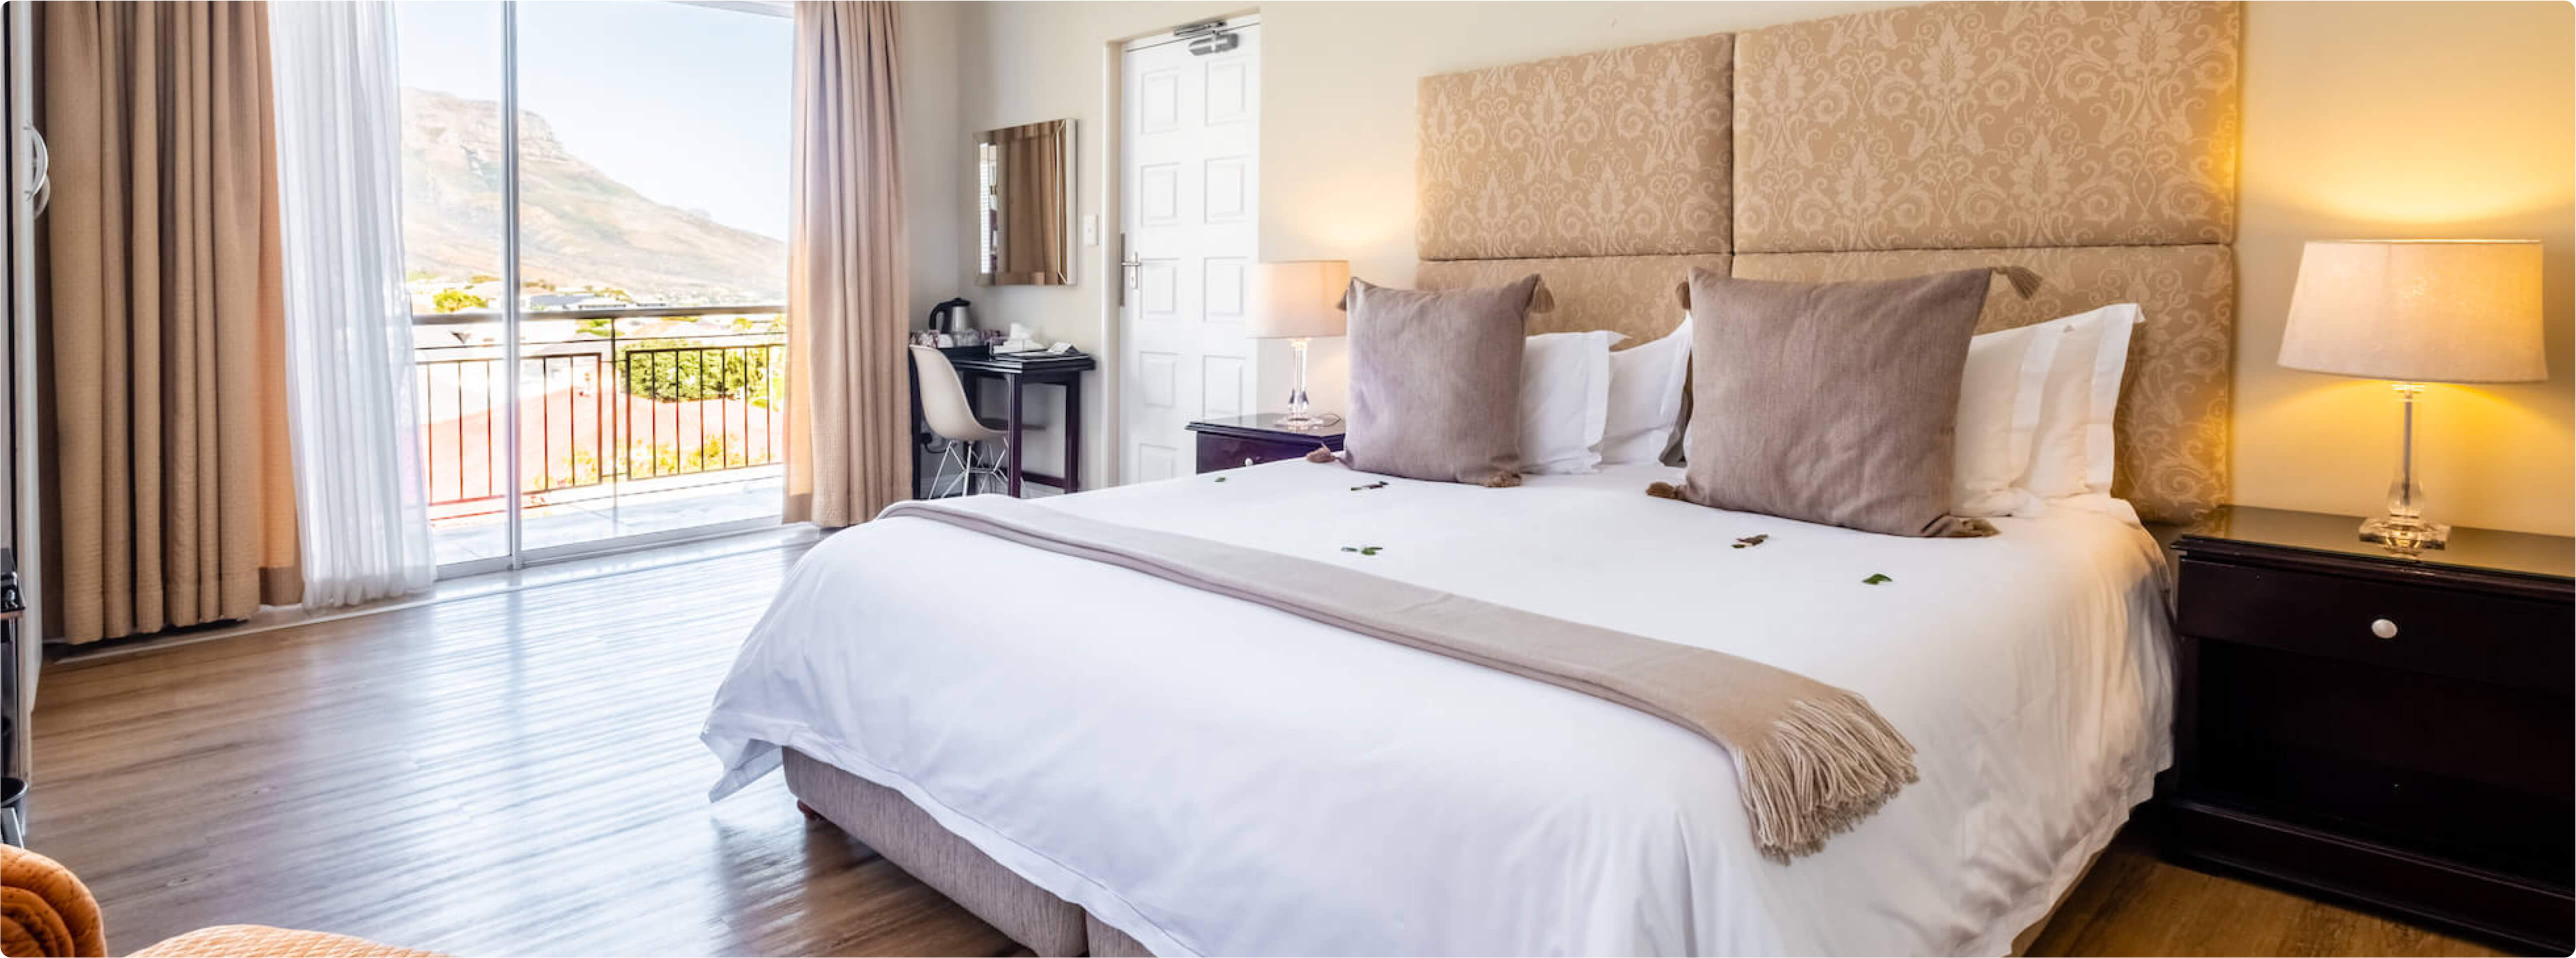 3 On Camps Bay - Superior Room